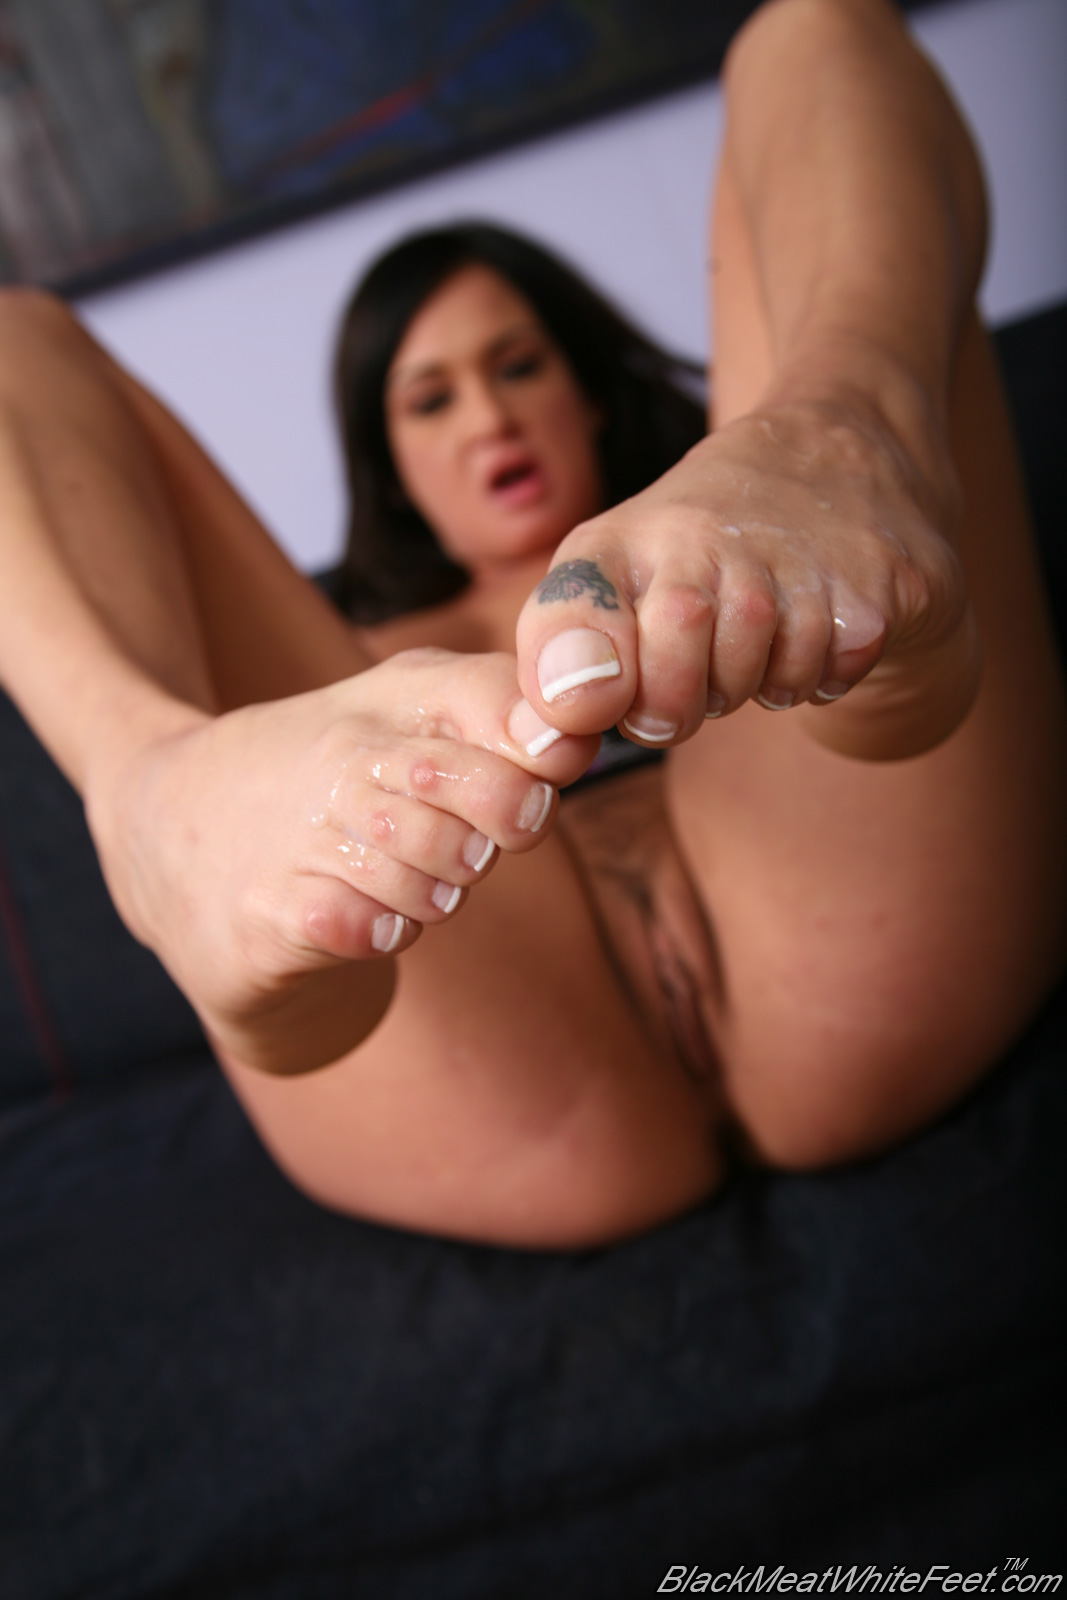 Tory lane footjob have the leaked